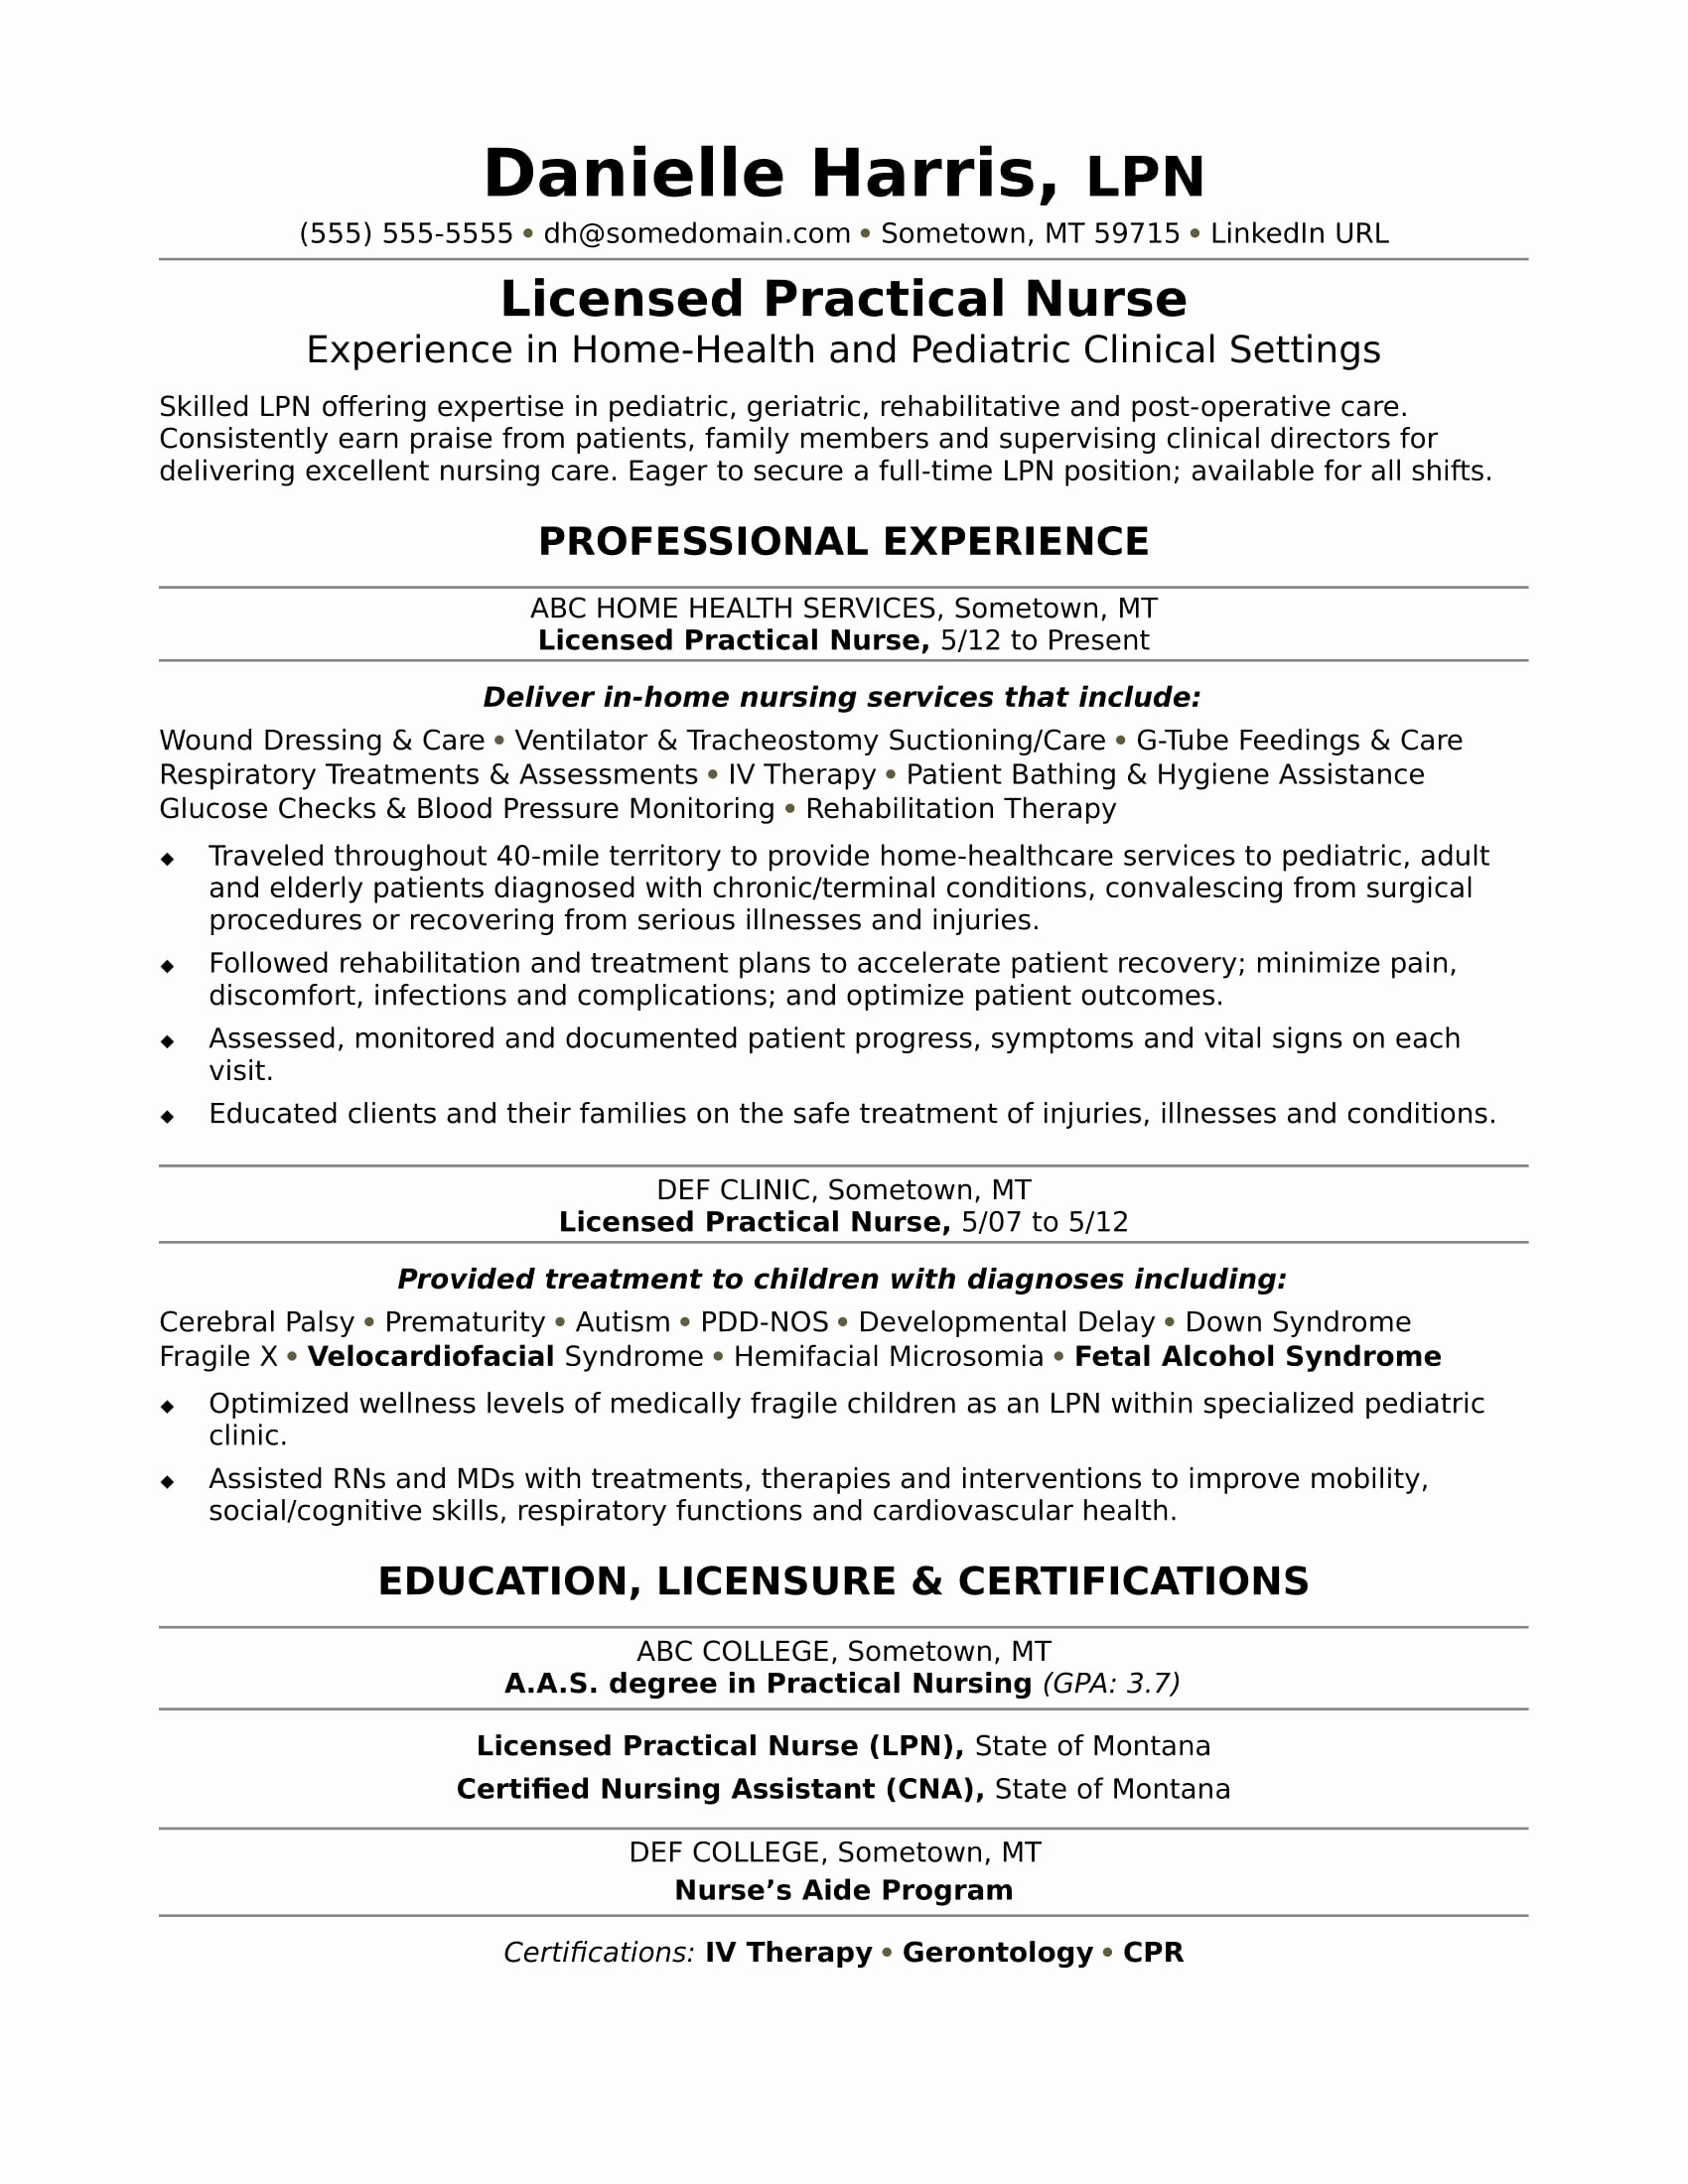 Nursing Student Resume with No Experience - Entry Level Resume Sample No Work Experience Fresh Resume No